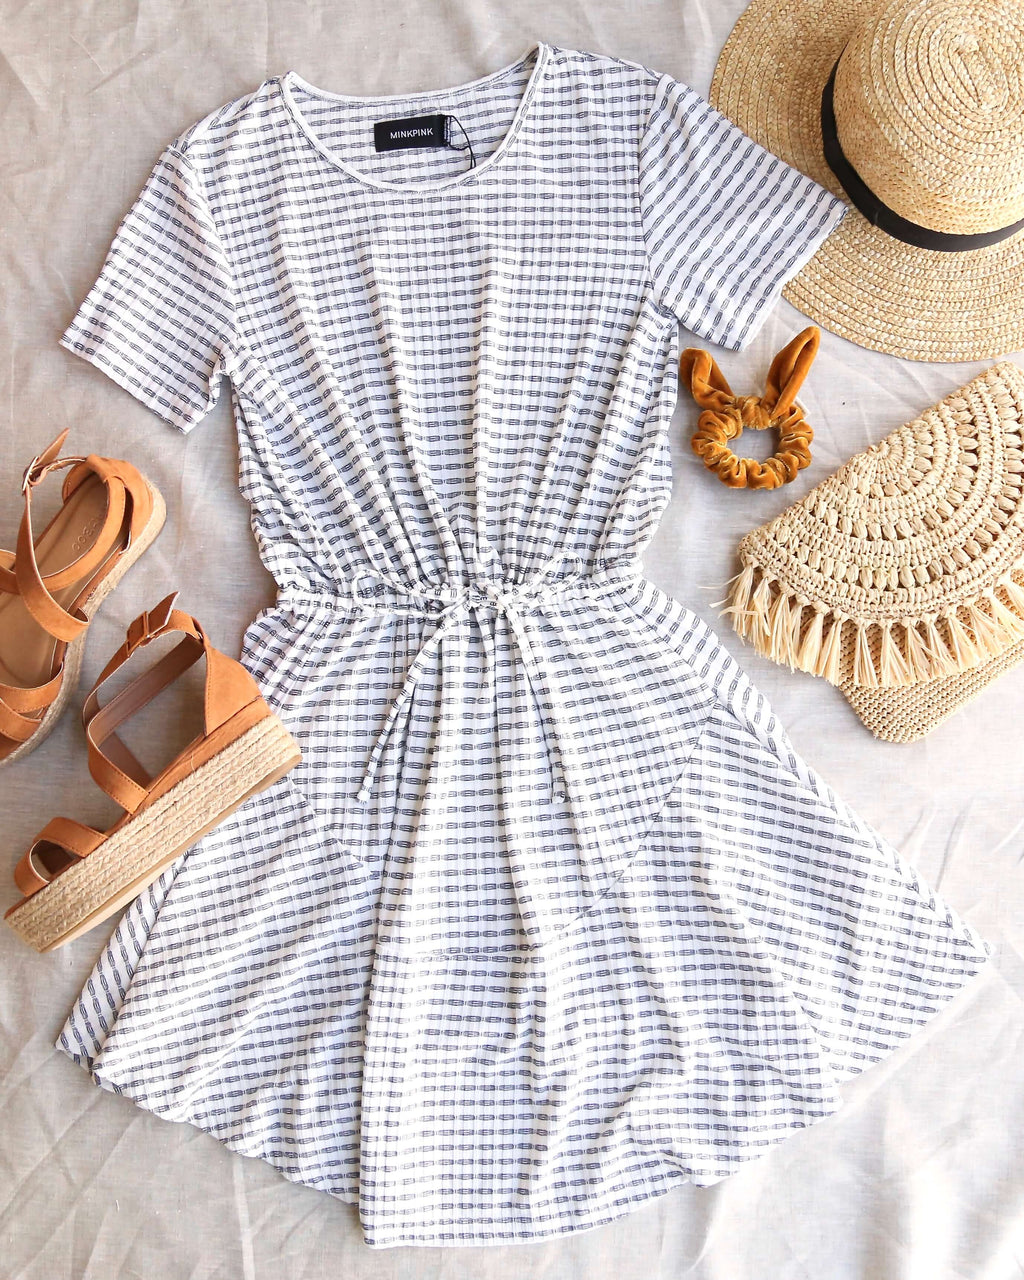 Final Sale - MINKPINK - River Skater Dress in White/Navy Stripes